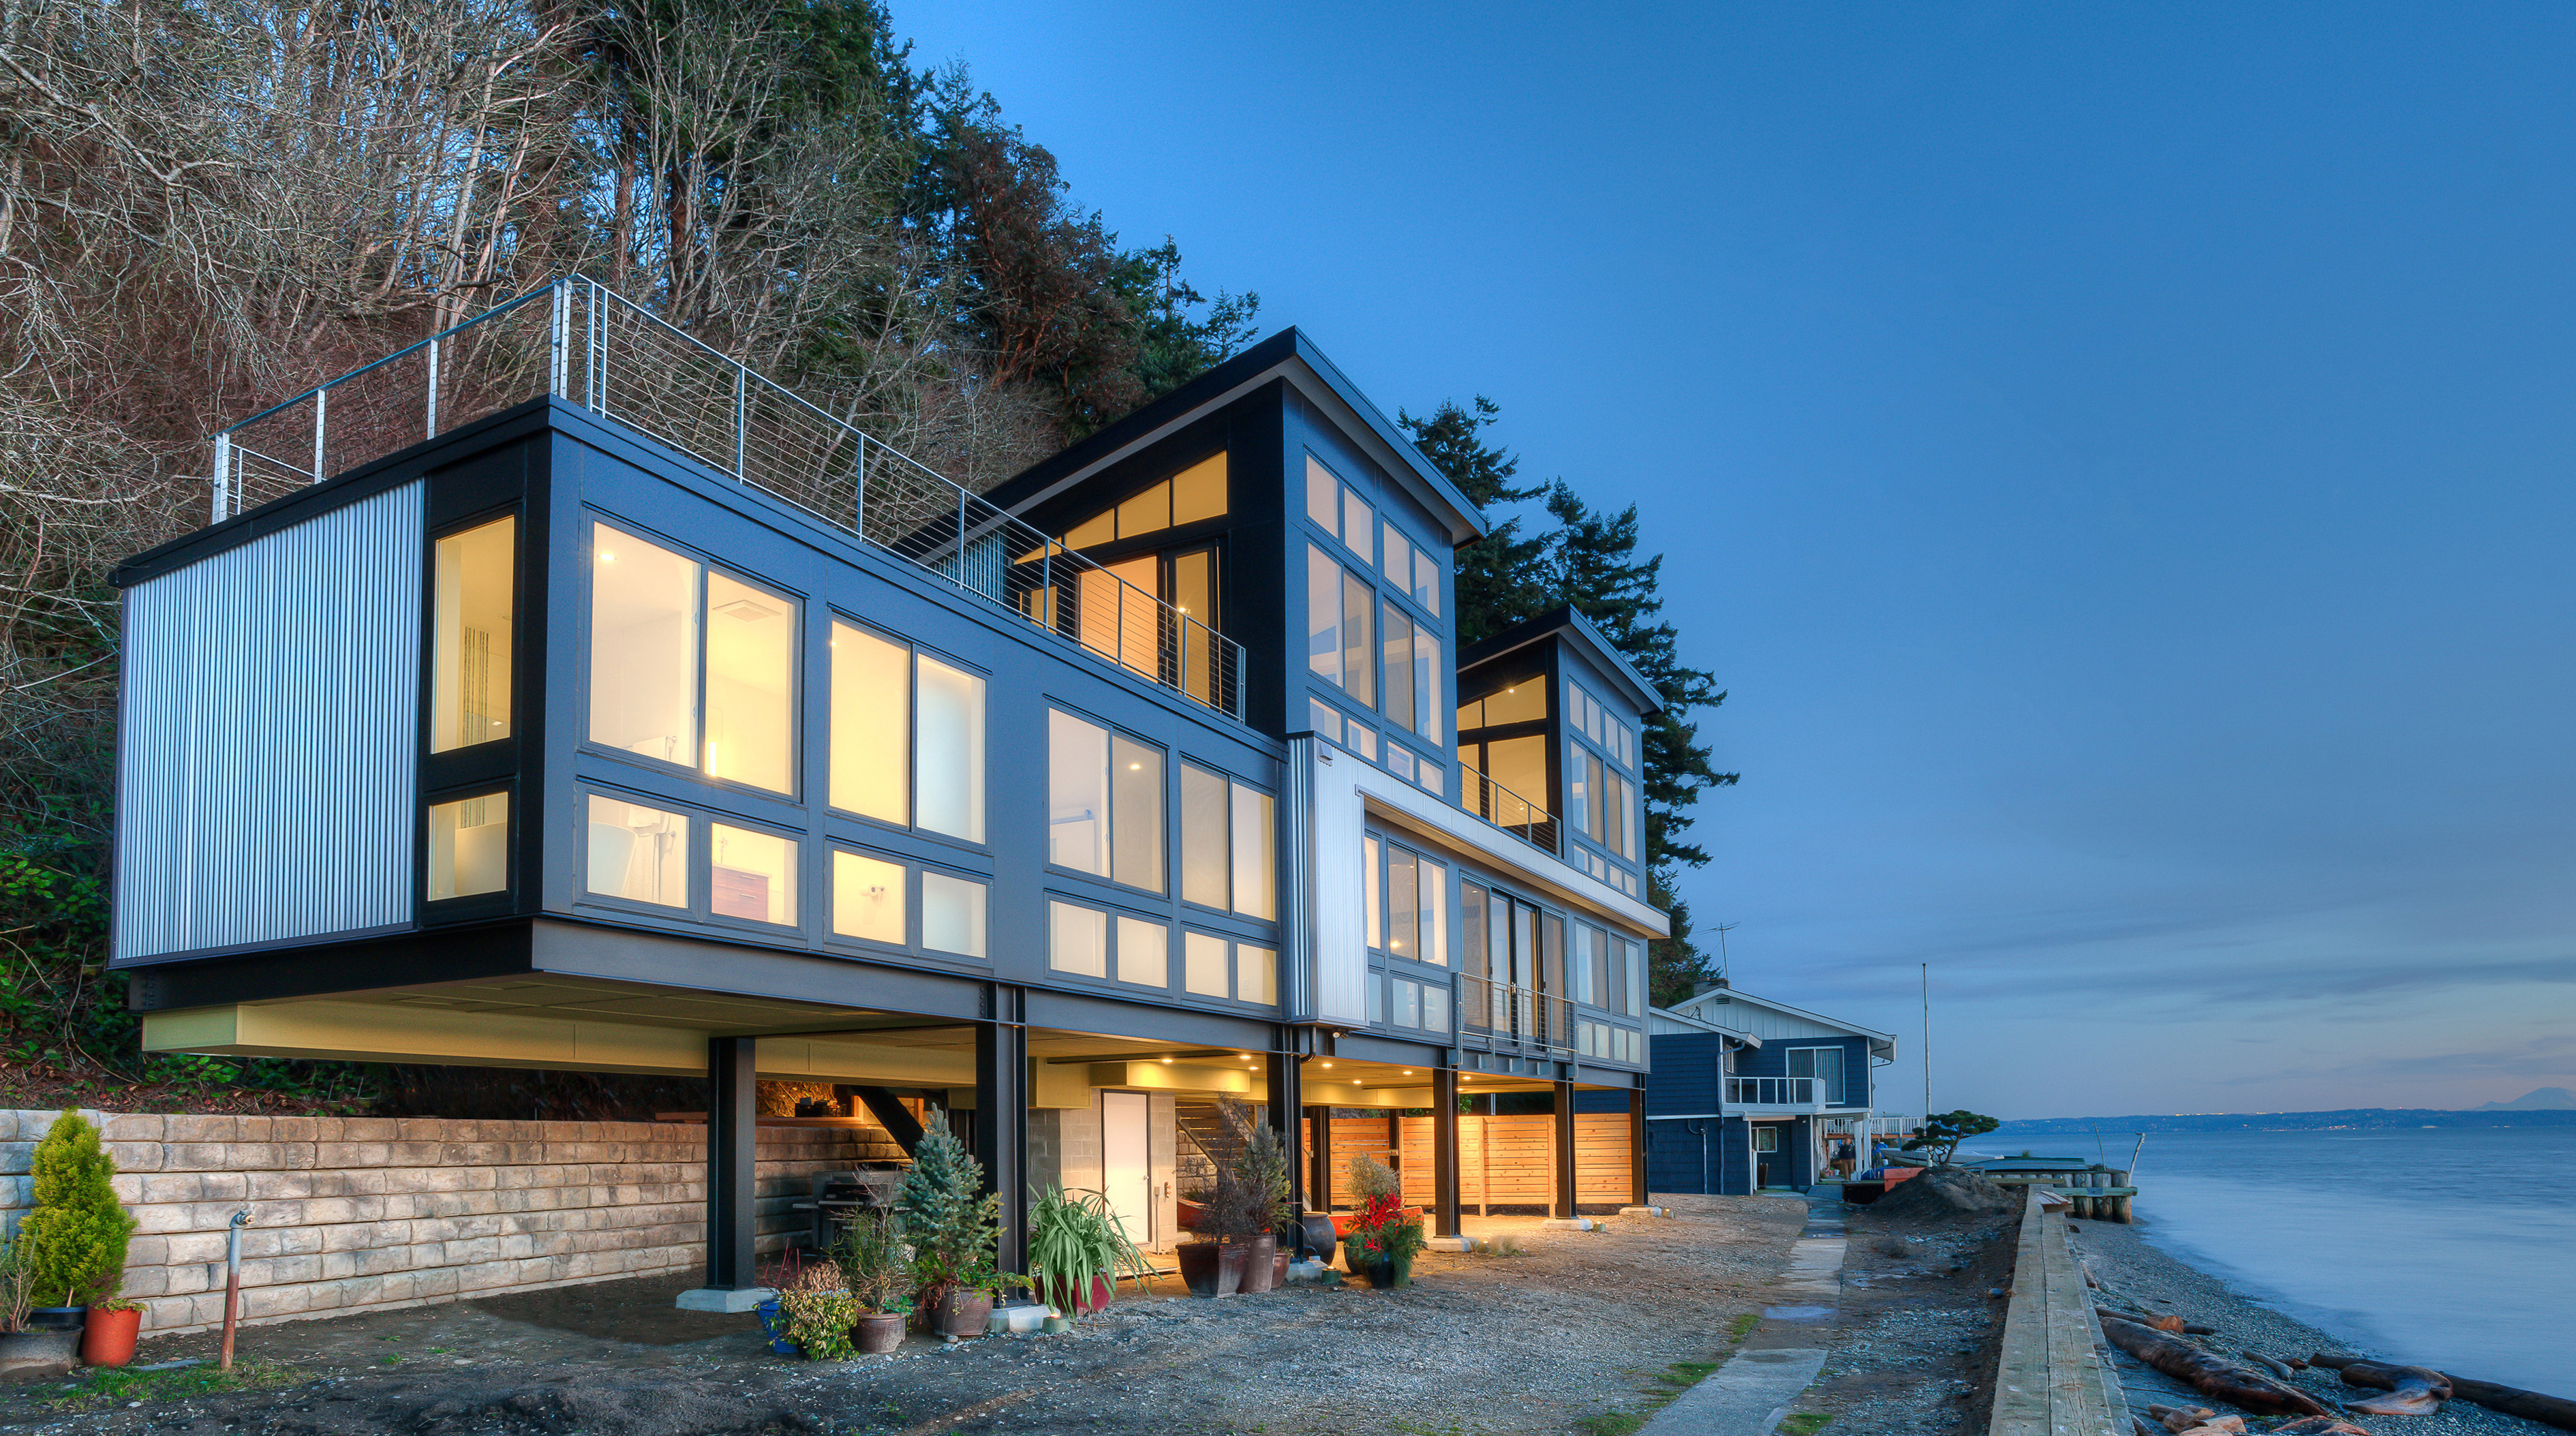 Saratoga hill house architect magazine designs for Beach house designs usa